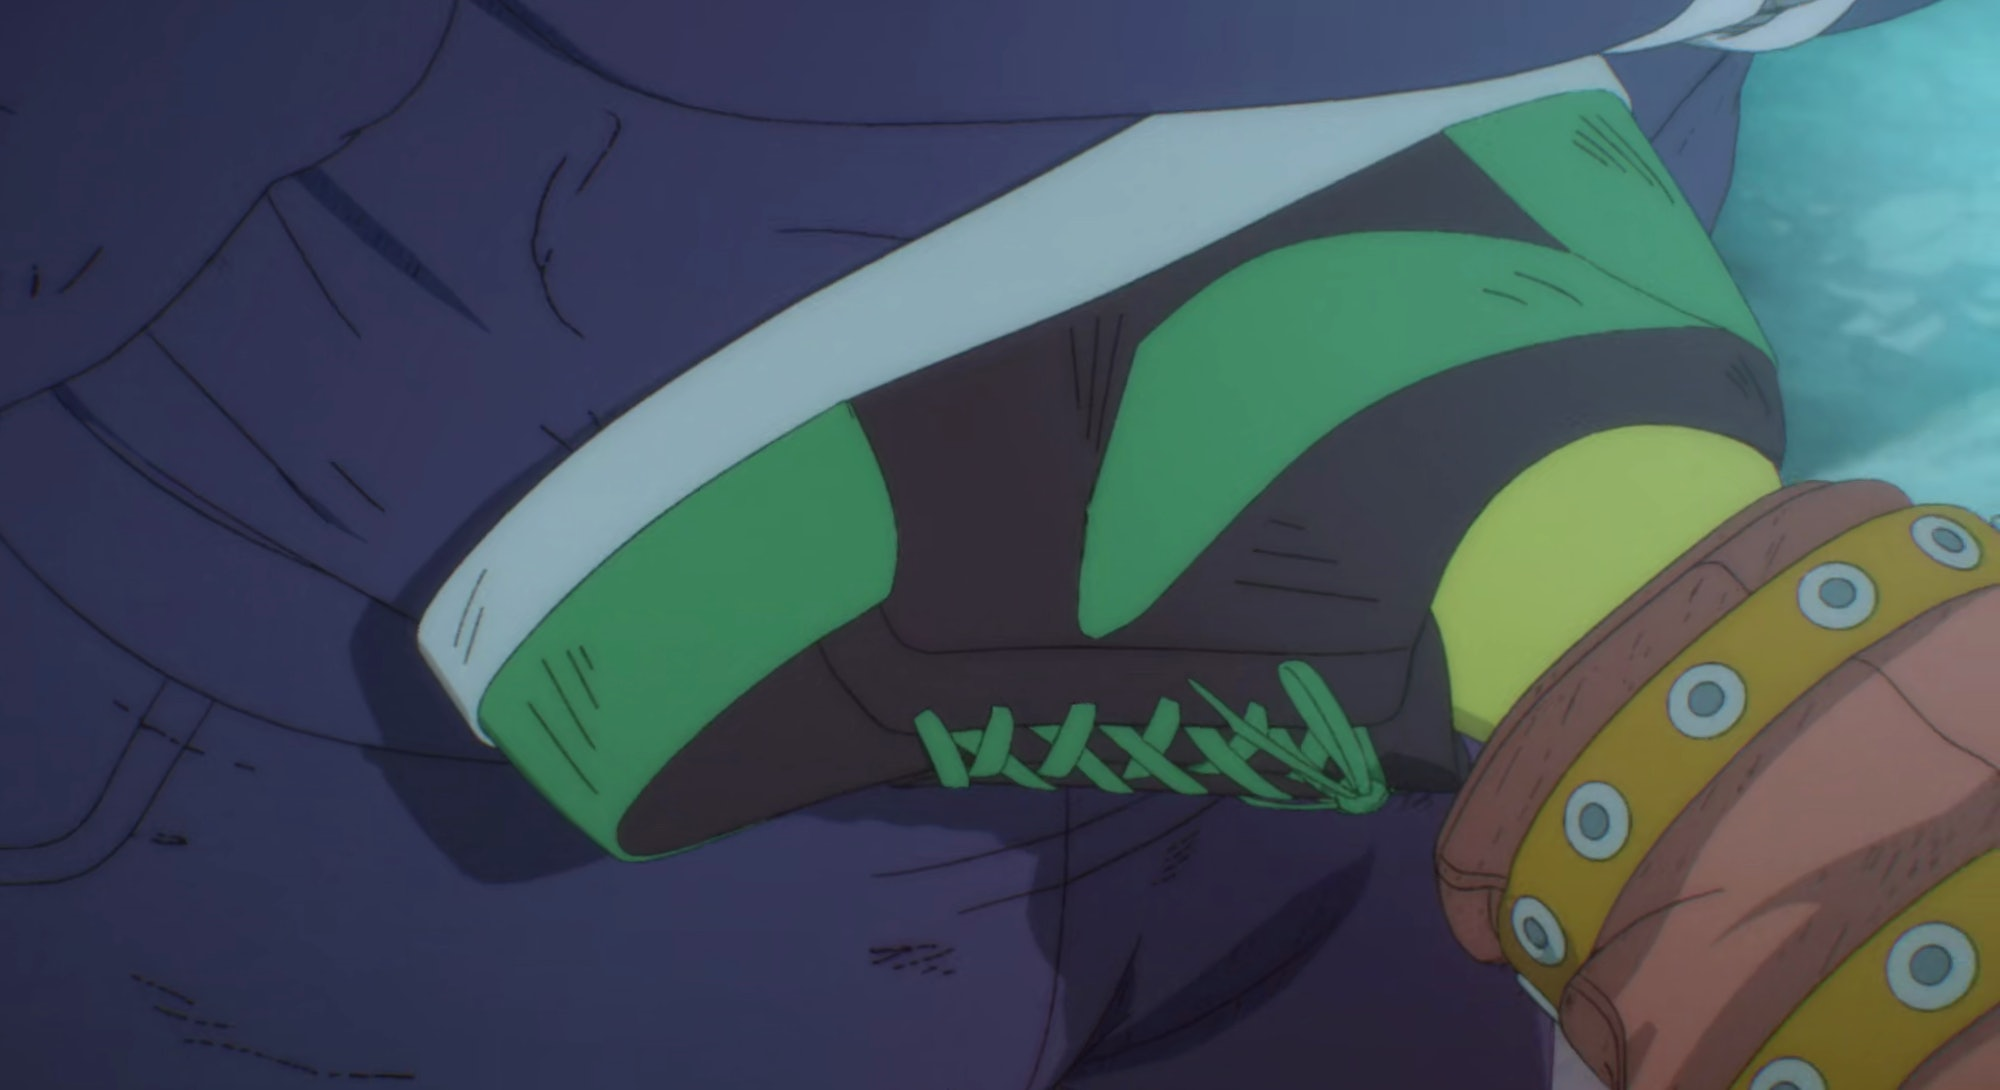 Nike-inspired sneakers in the Netflix anime series 'Dorohedoro'.